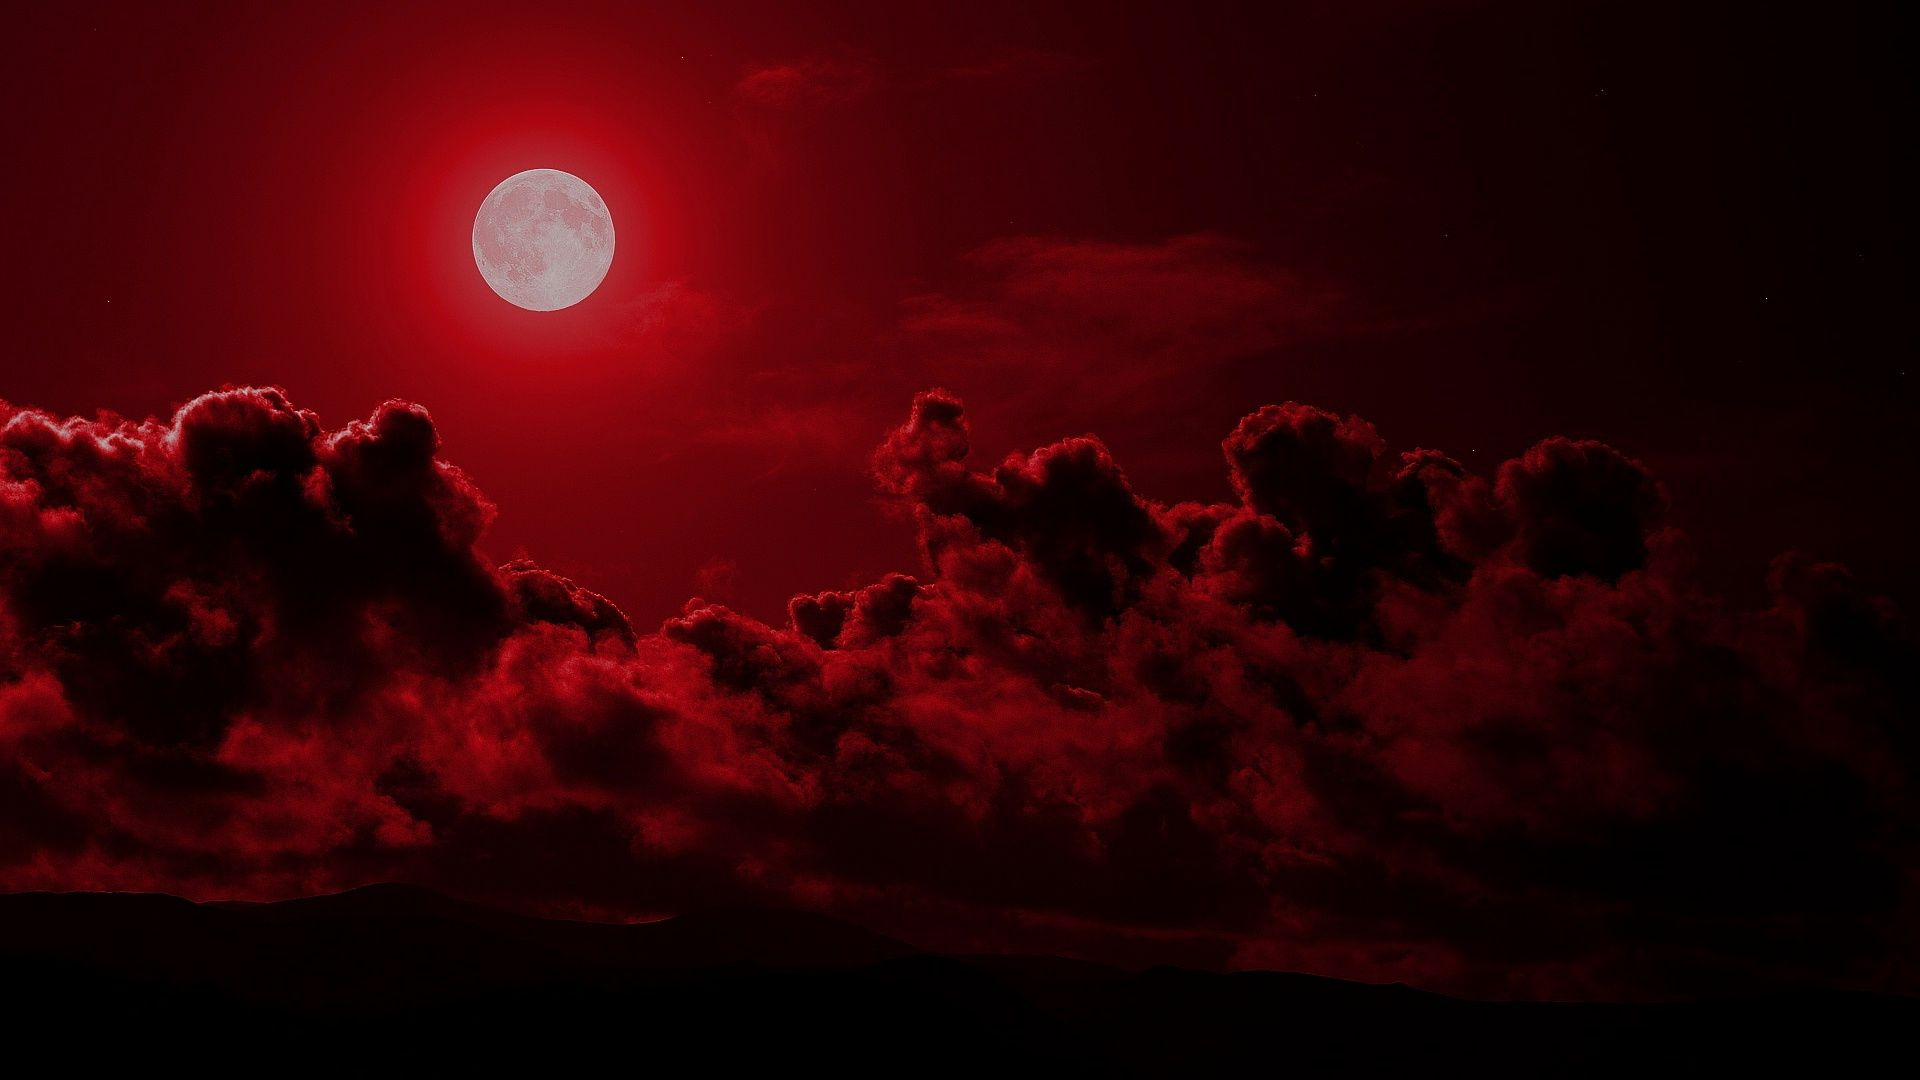 blood moon wallpaper, red moon 1920x1080